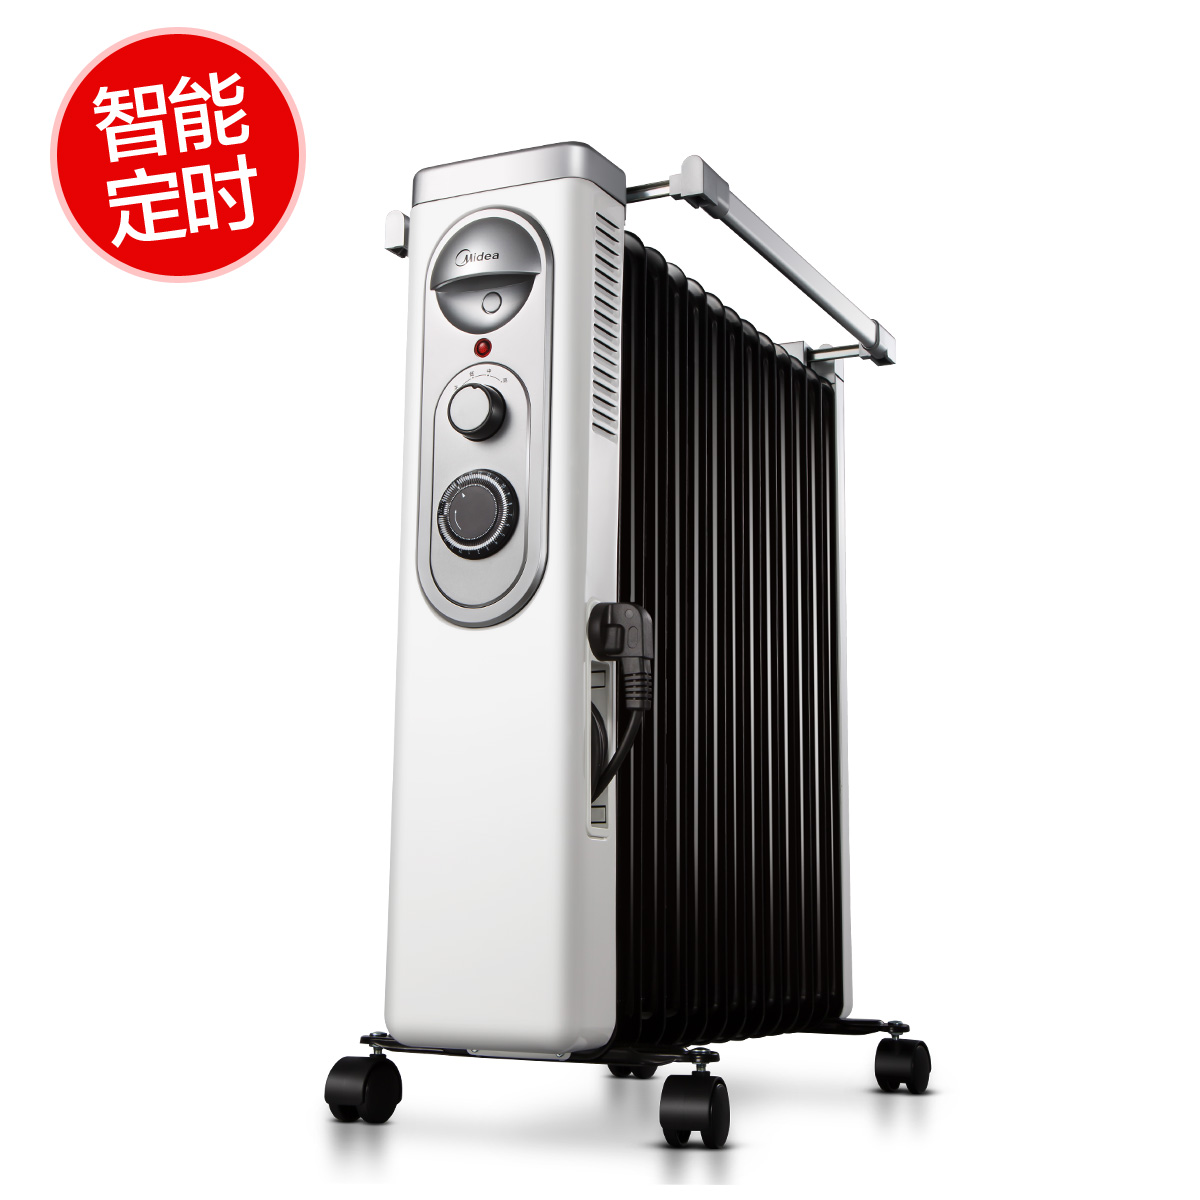 popular 2000w heater buy cheap 2000w heater lots from china 2000w heater suppliers on. Black Bedroom Furniture Sets. Home Design Ideas